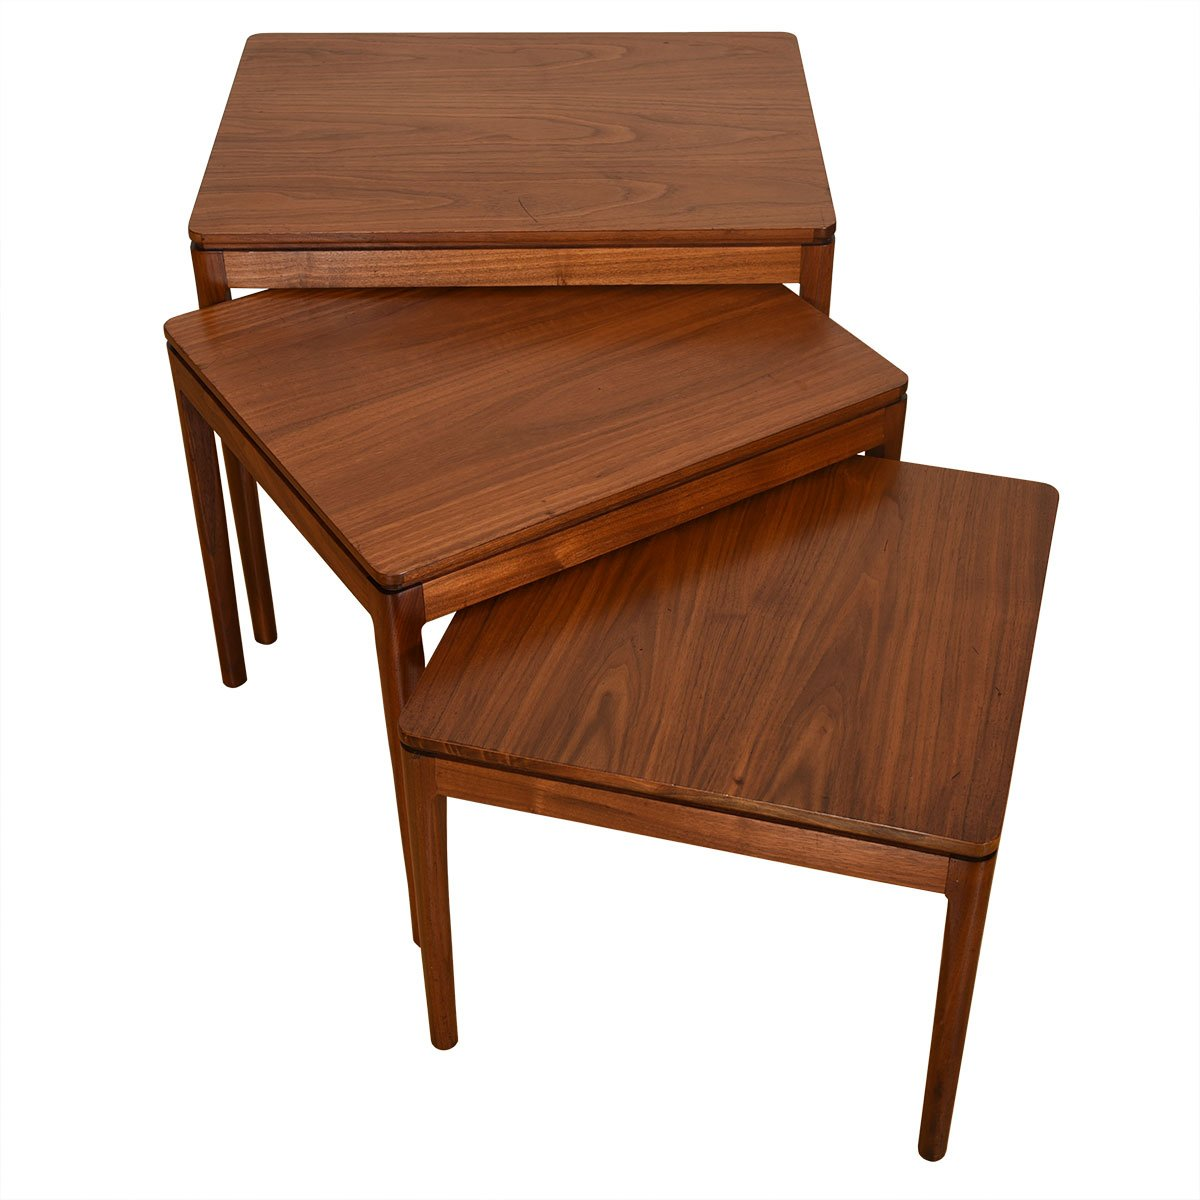 Set of 3 Mid Century Modern Walnut Nesting Tables